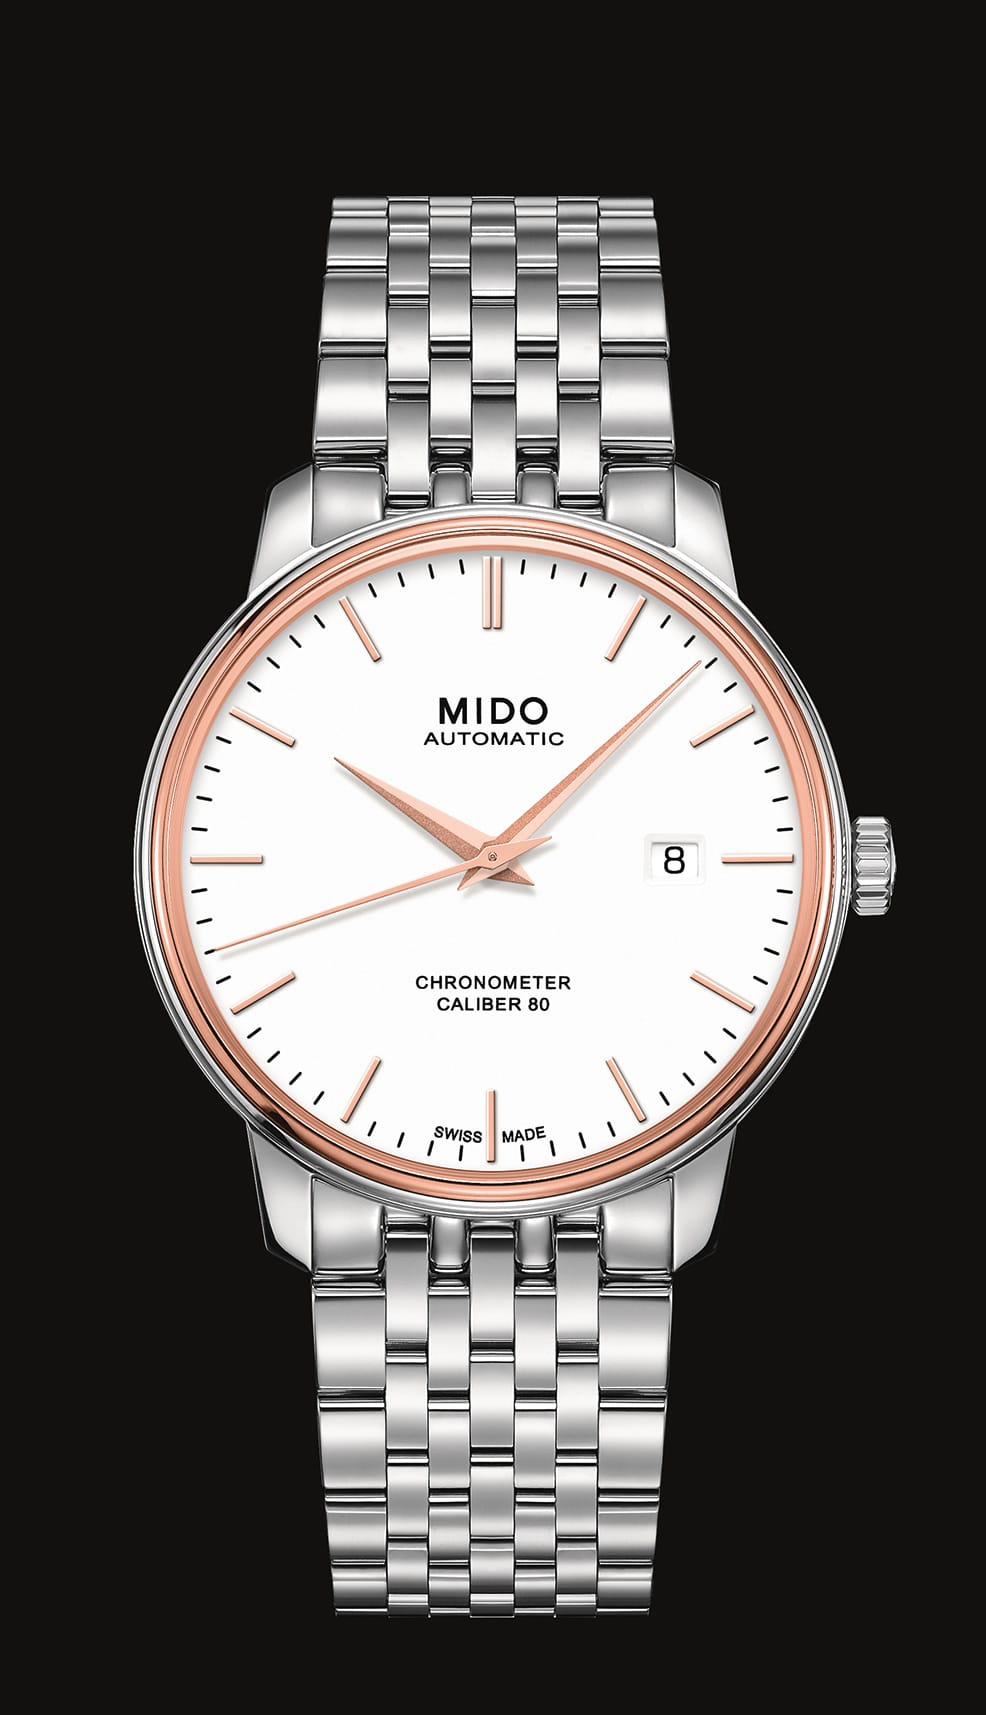 baselworld-2017-preview-mido-baroncelli-caliber-80-chronometer-si-einstieg-02